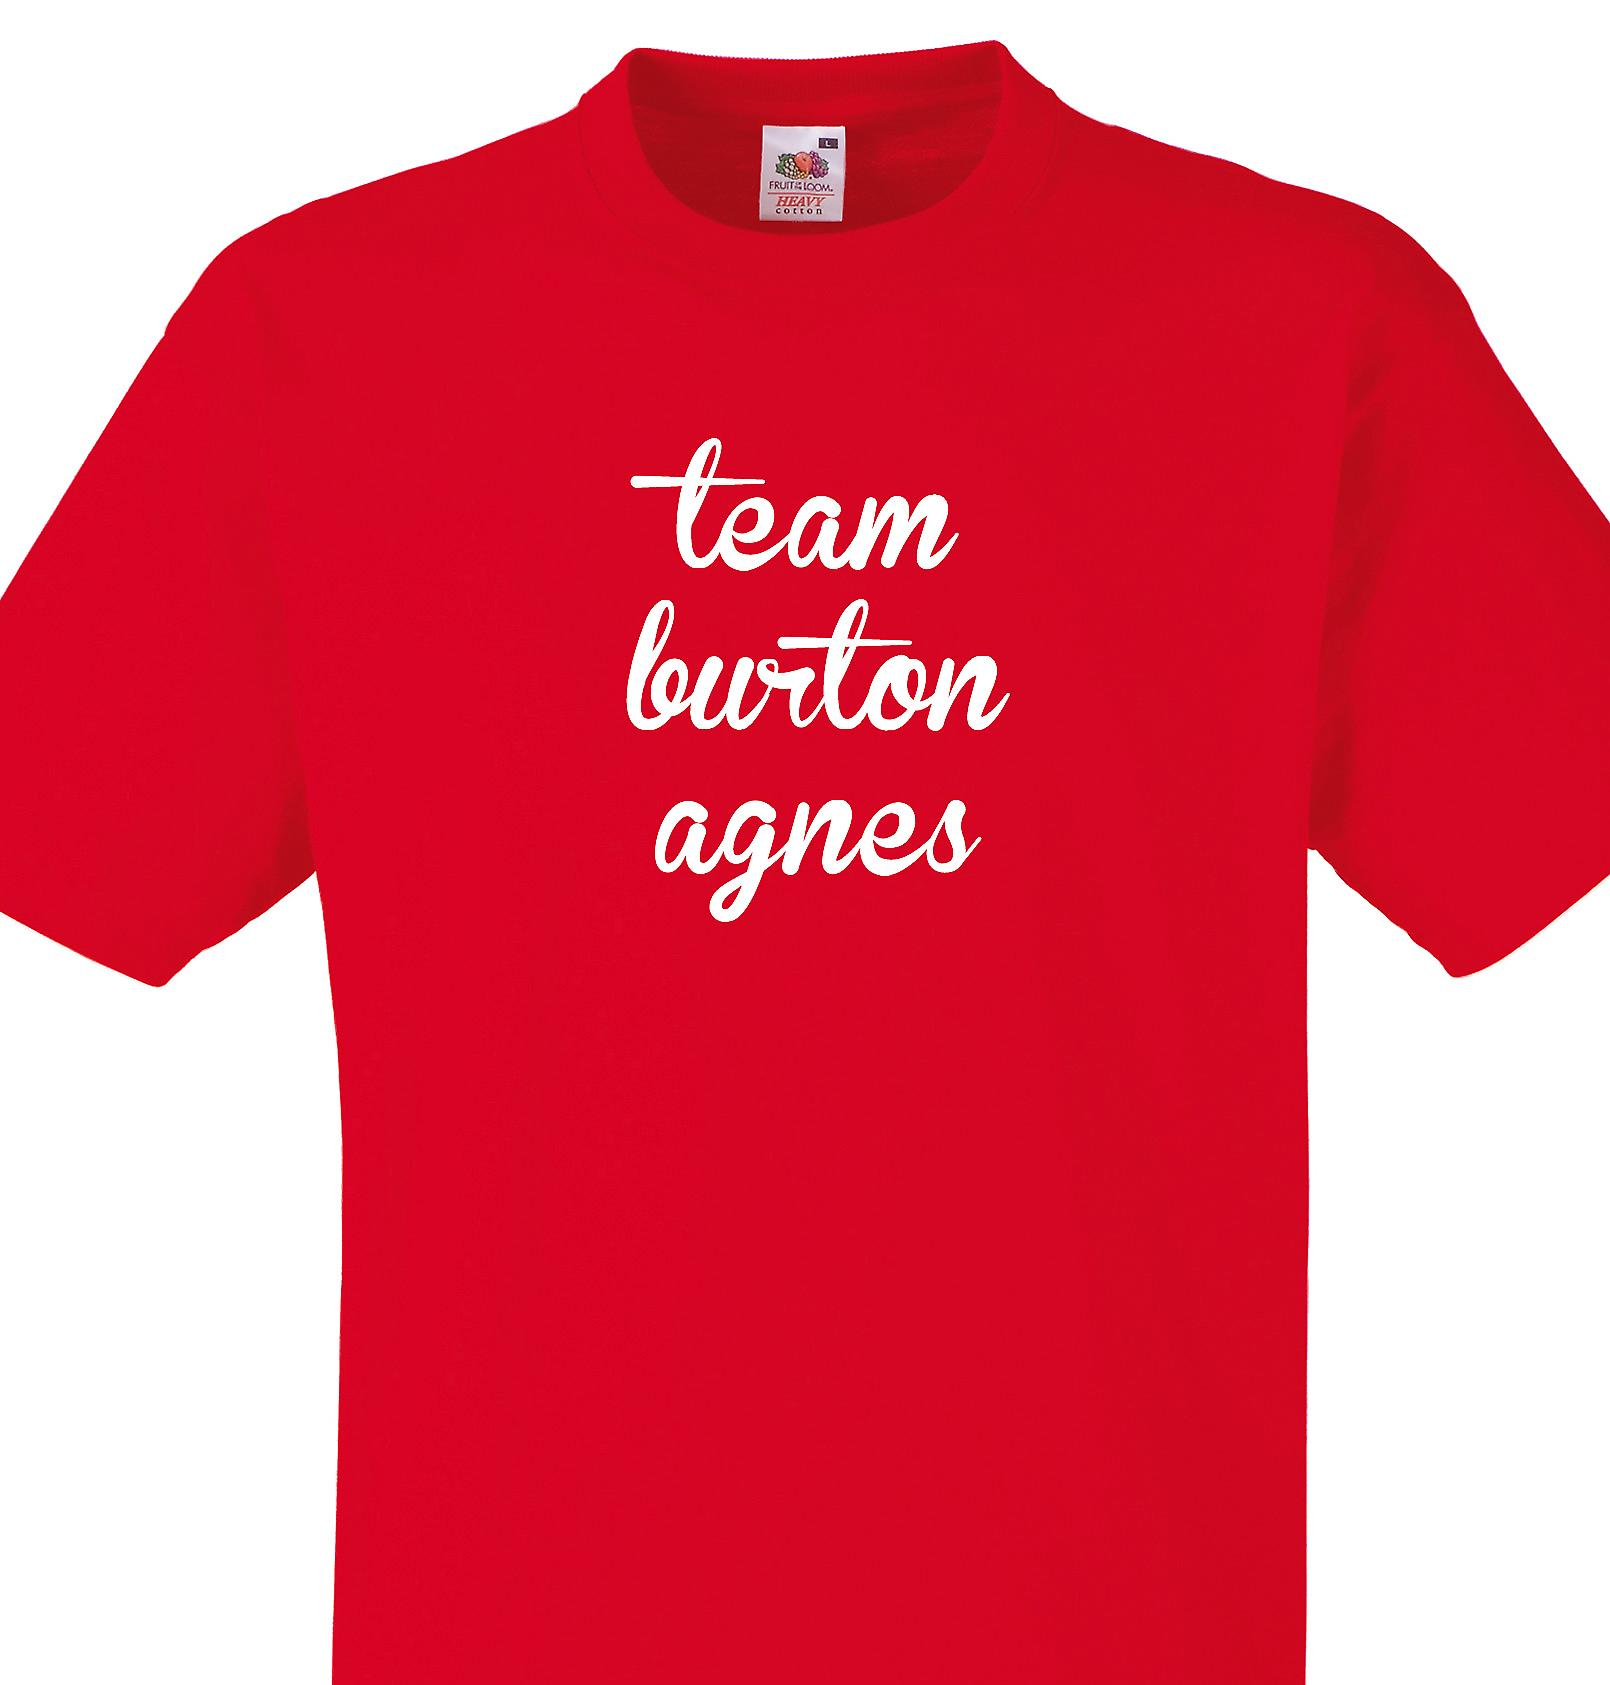 Team Burton agnes Red T shirt